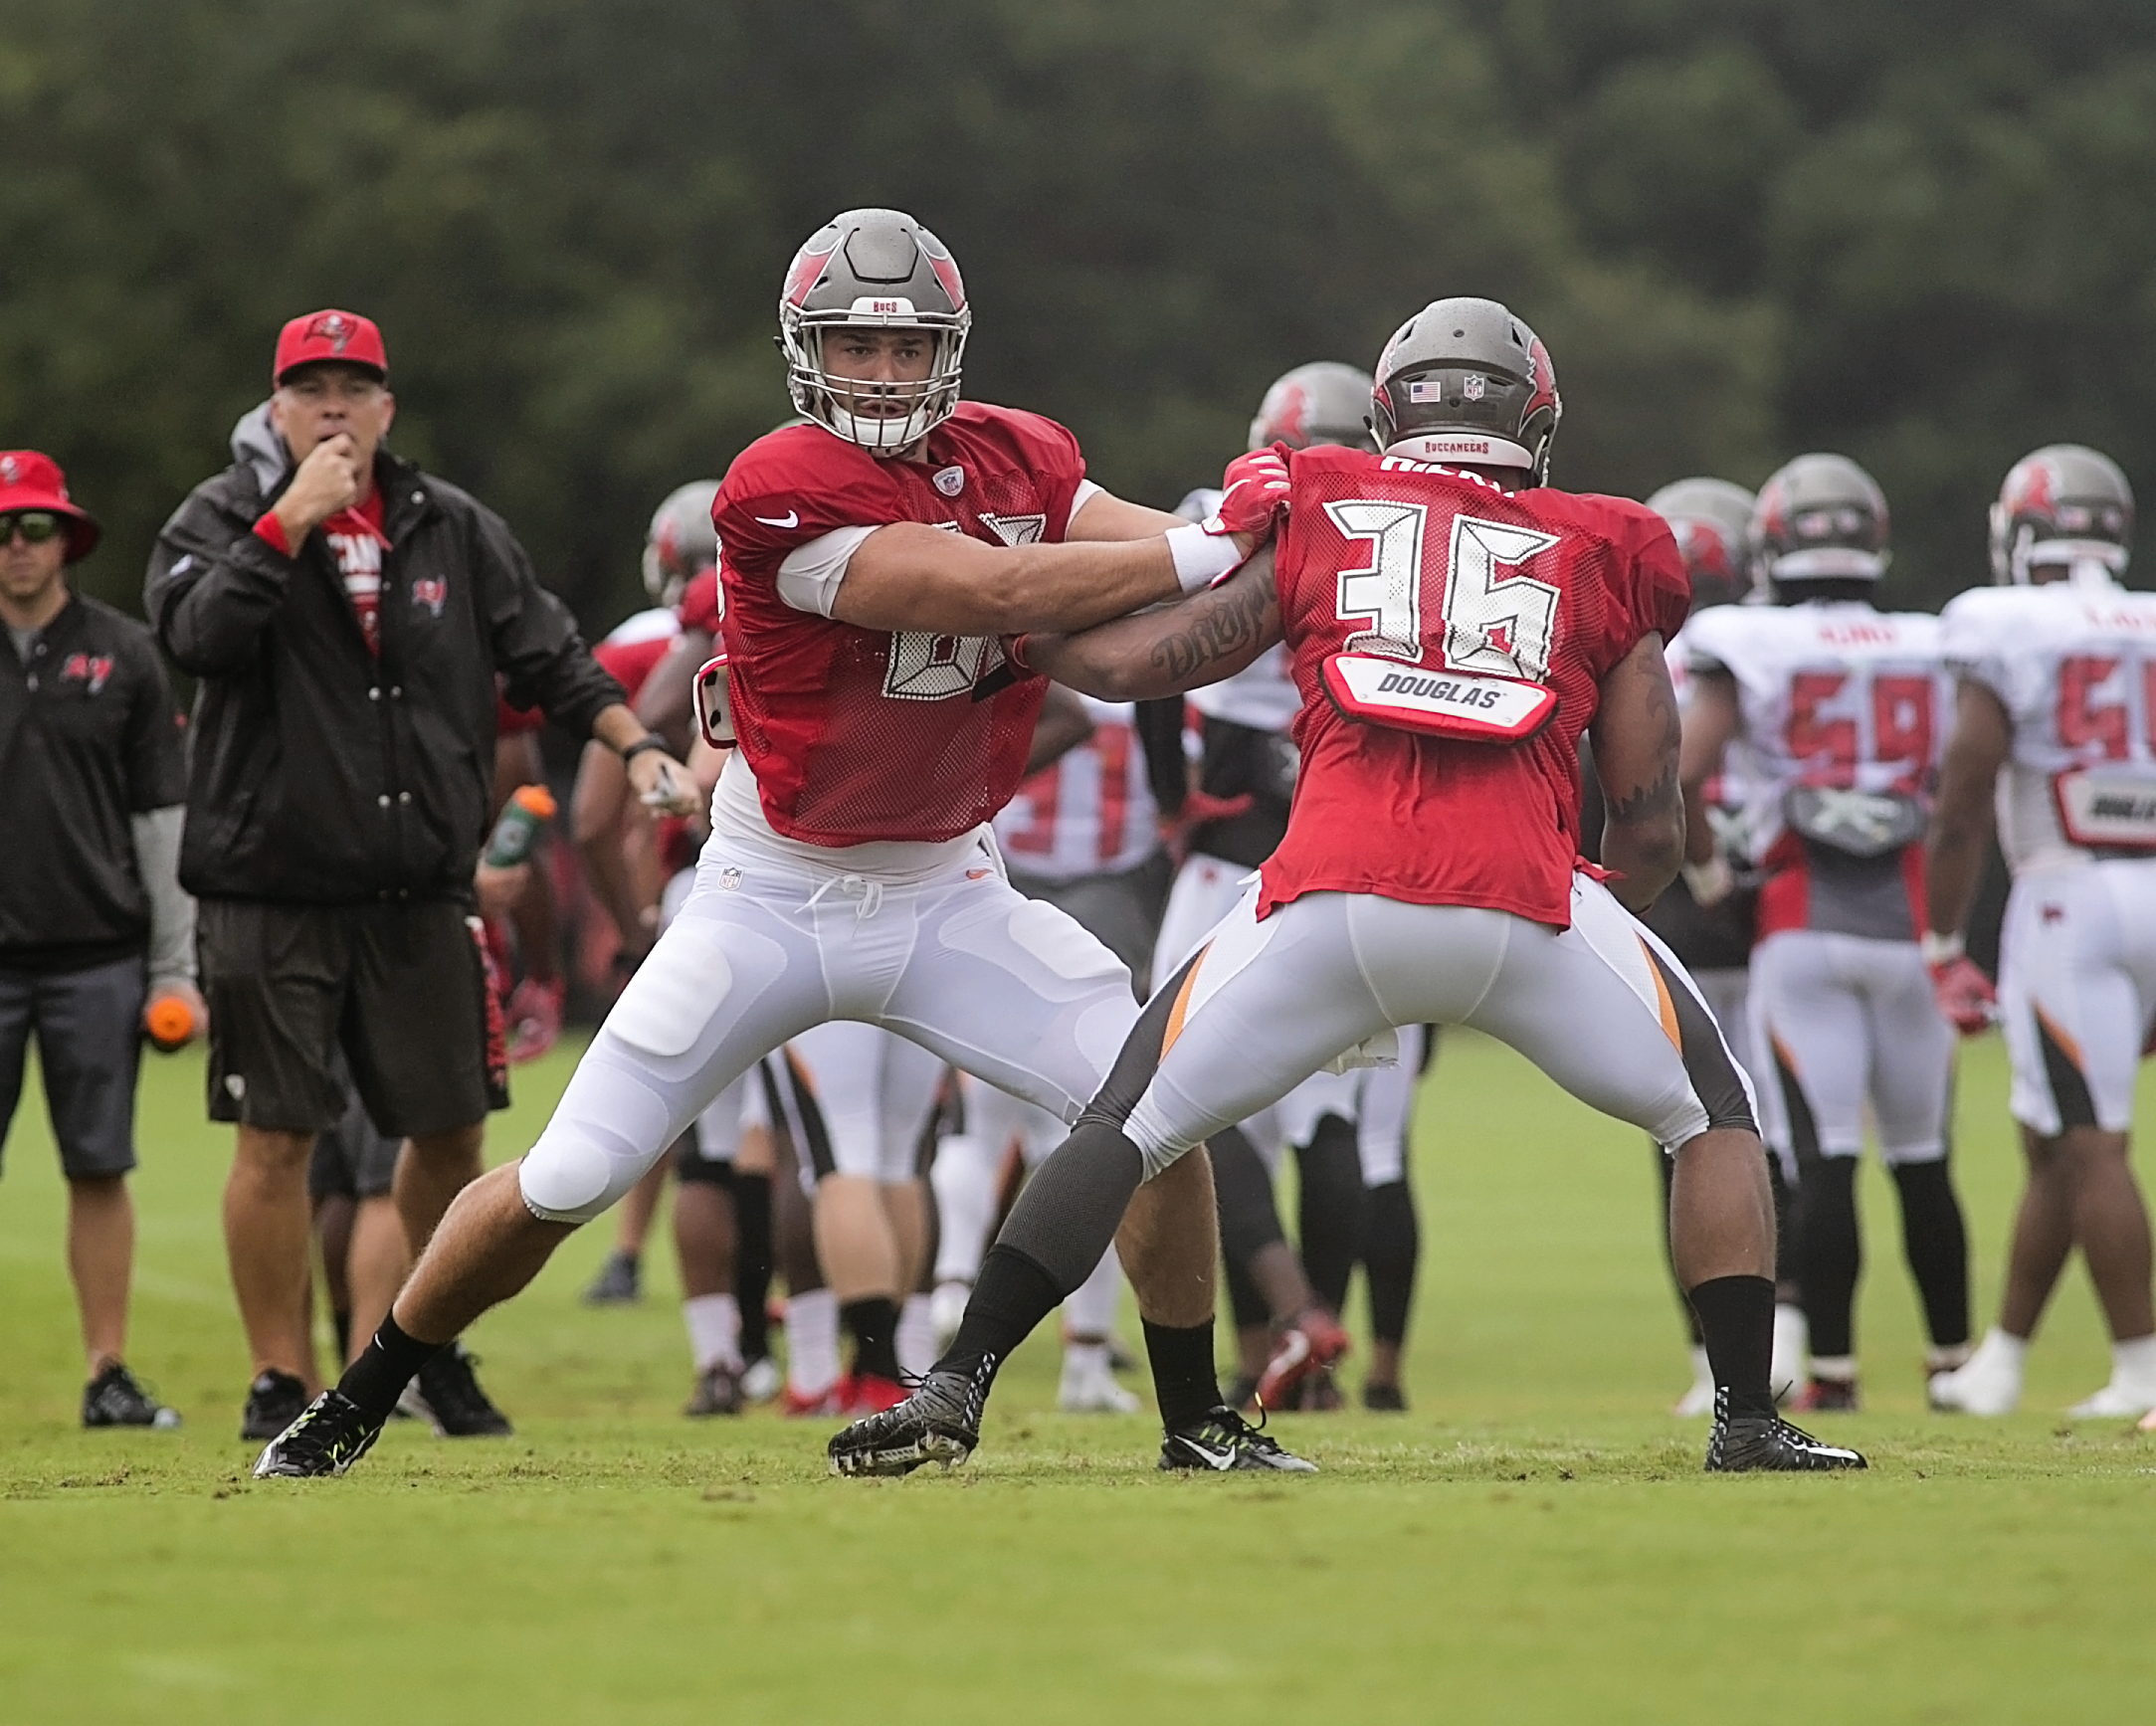 Bucs think they have a find in tight end Auclair./CARMEN MANDATO